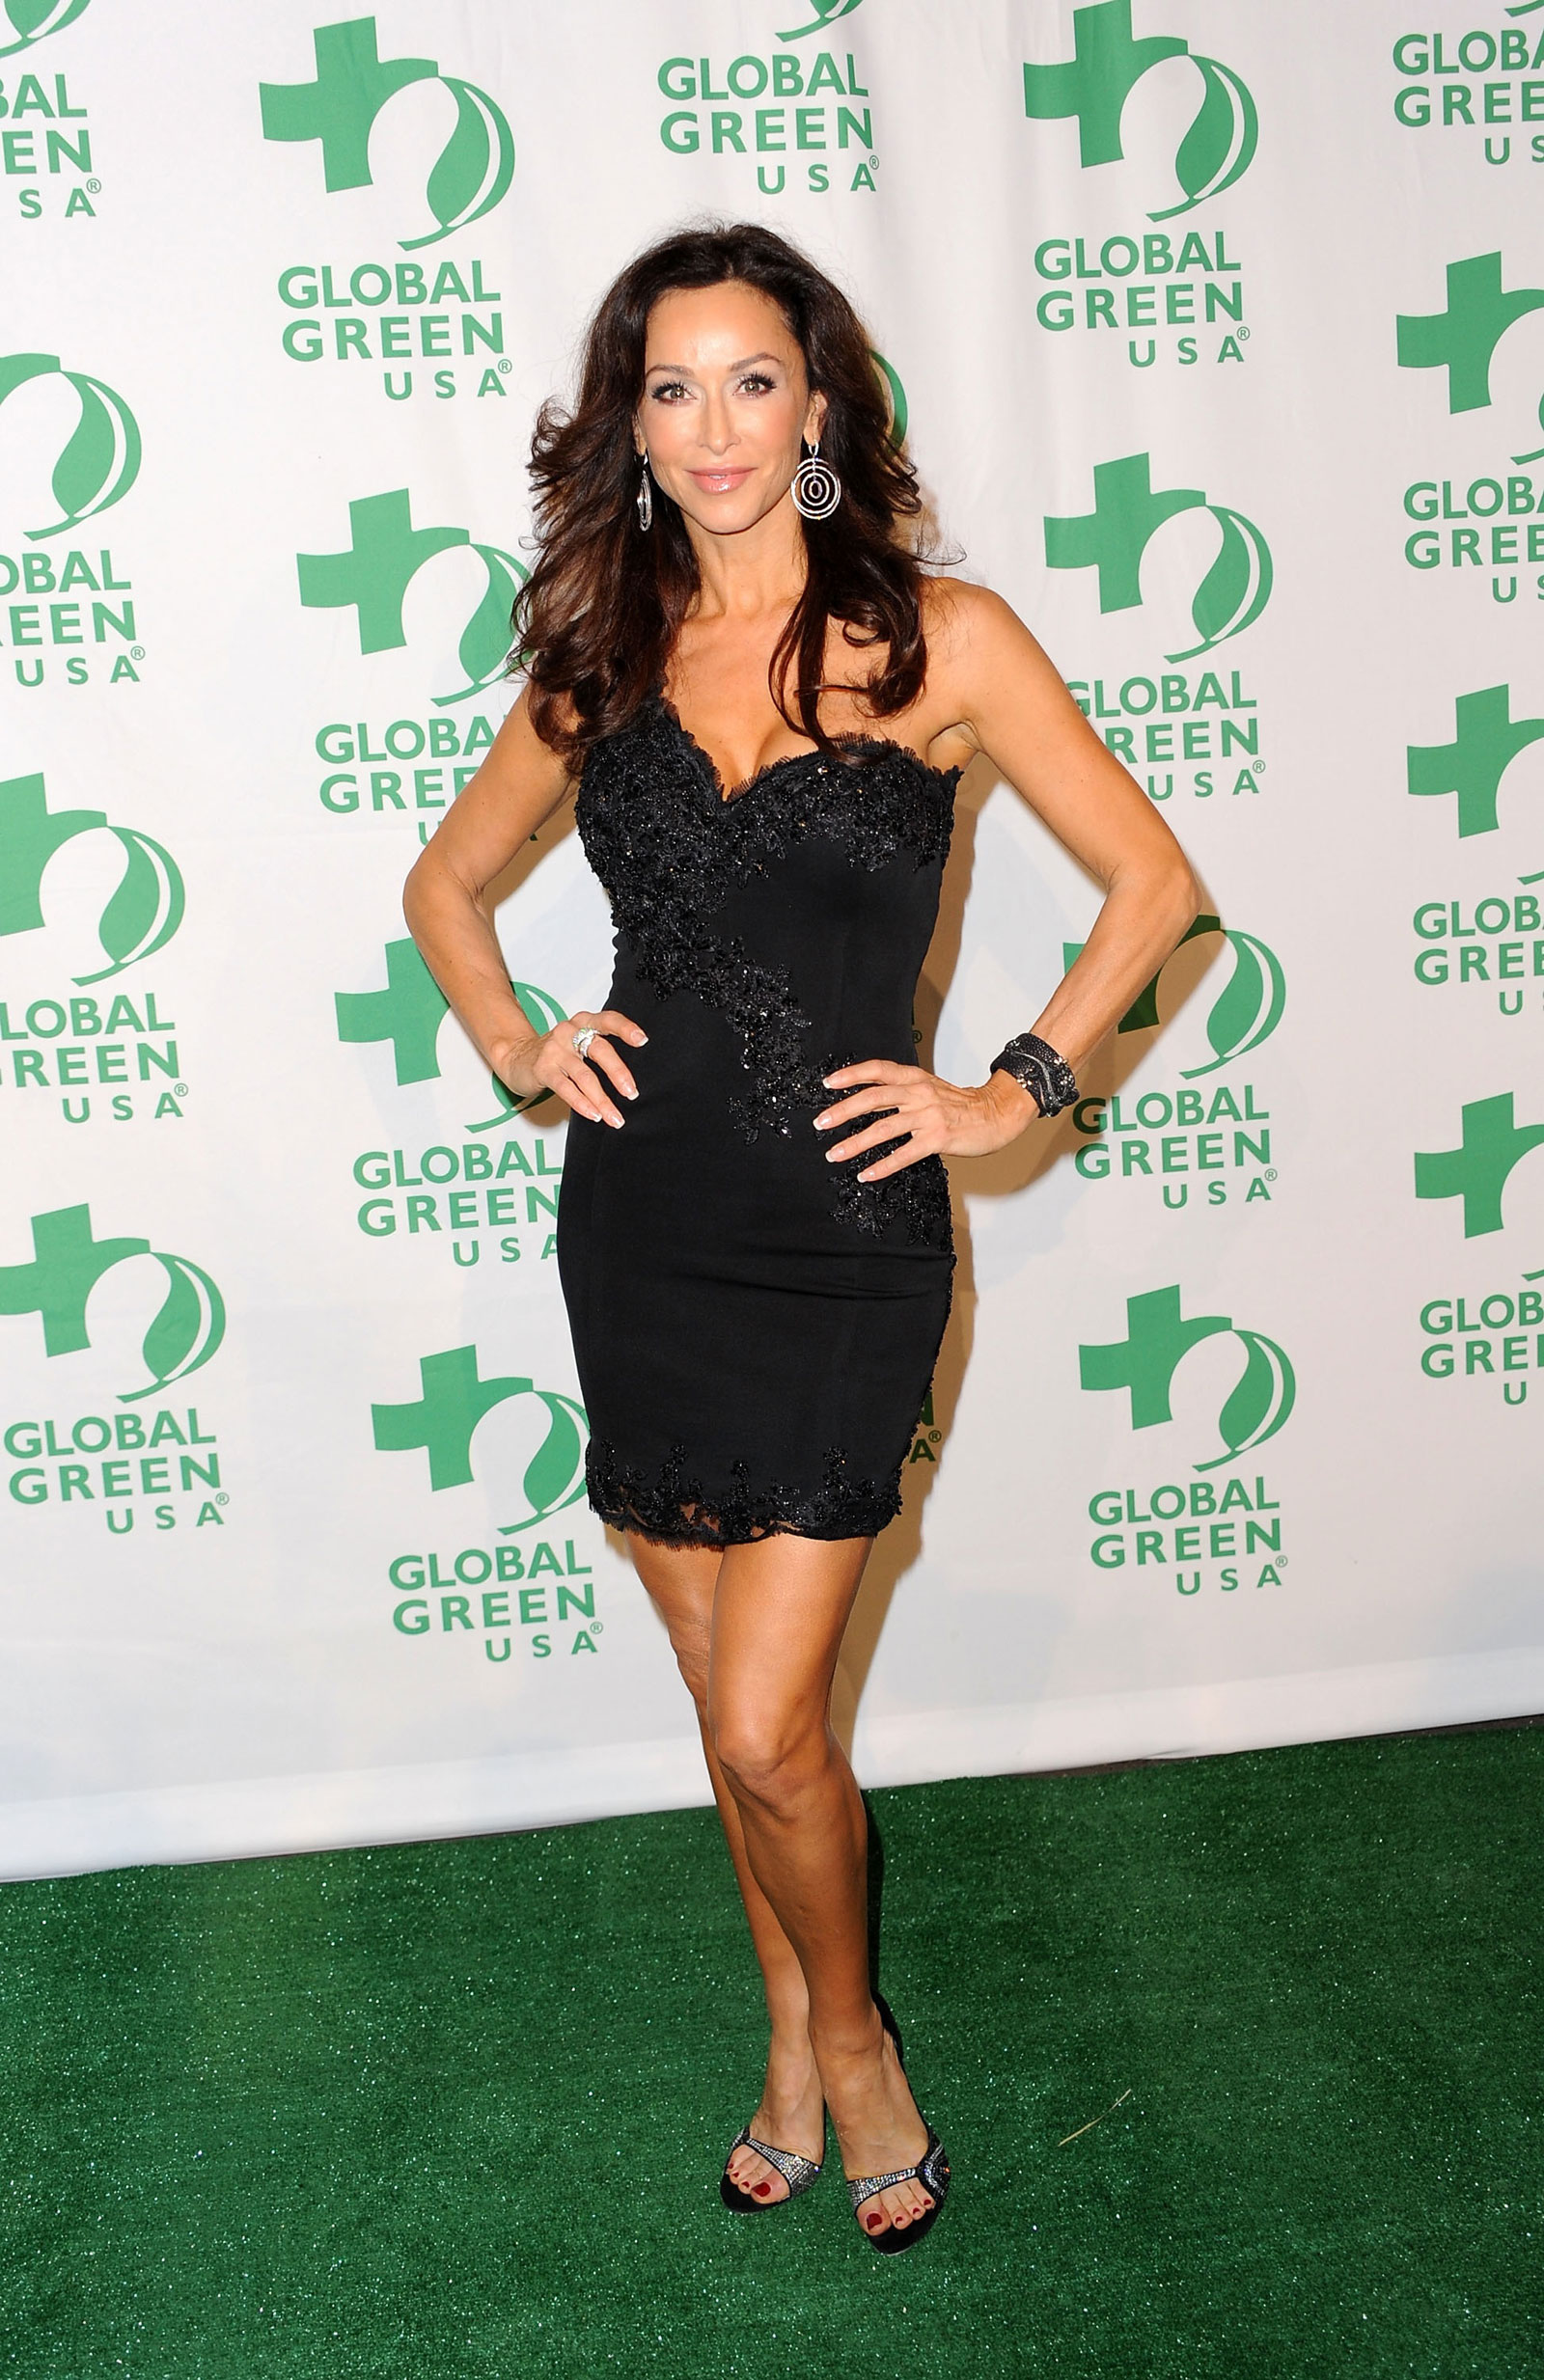 Asian hookup Meet gorgeous Asian men and women and Get Together for the time that is good! Sofia Milos at Global Green USAs Pre Oscar Party 4